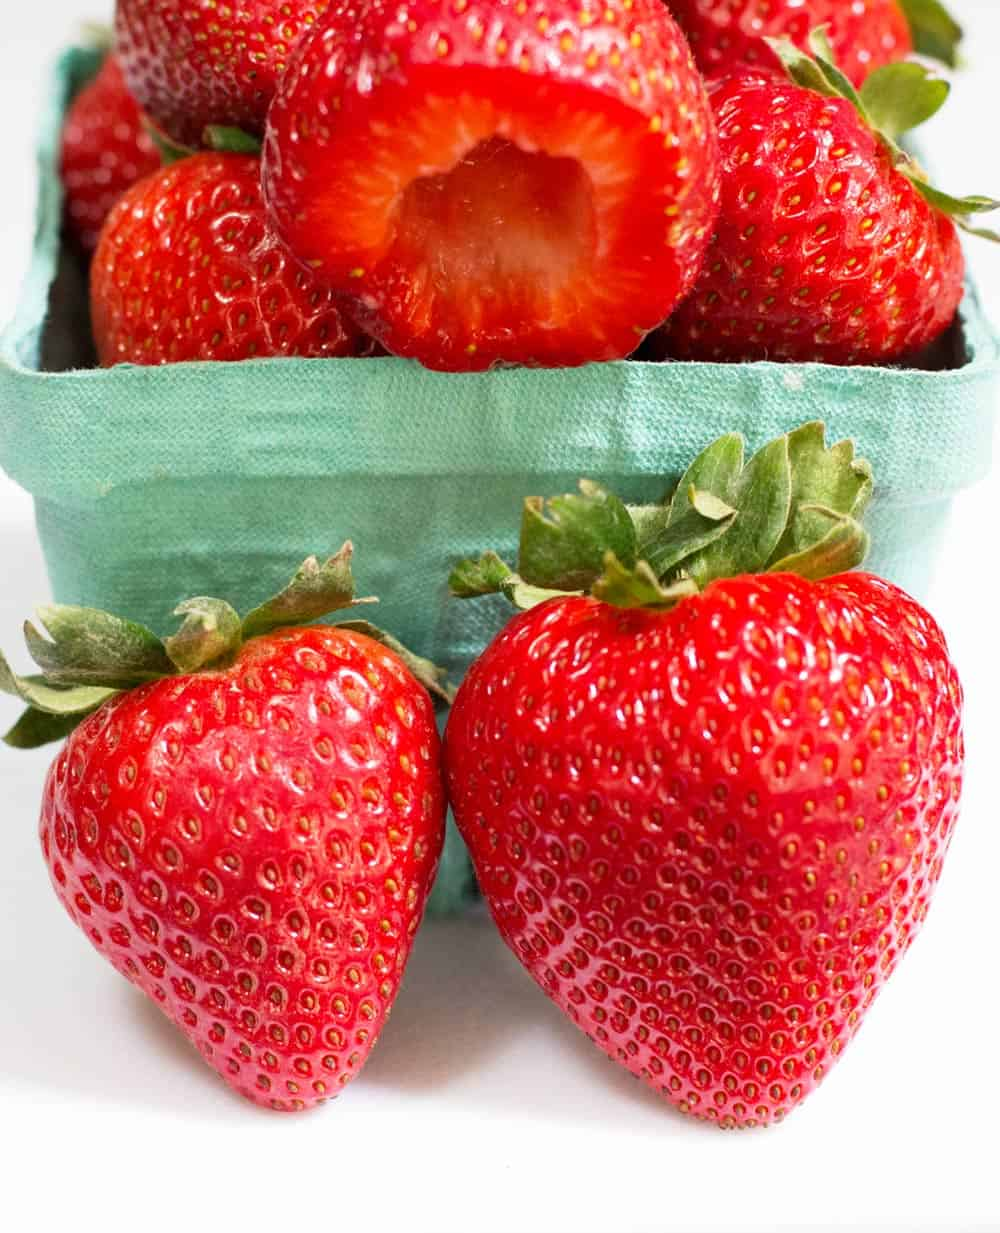 a basket of strawberries with 2 in front